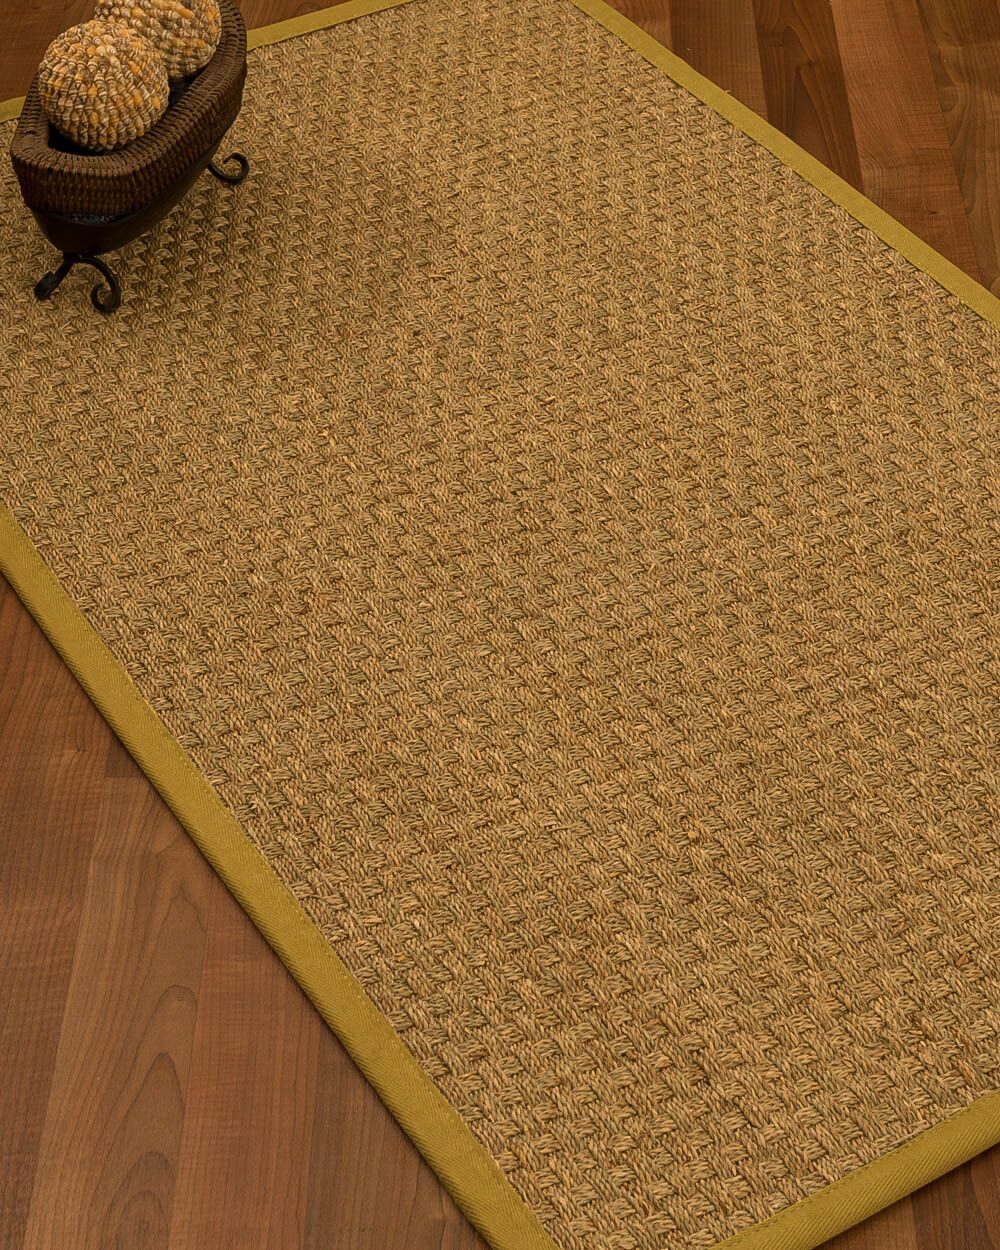 Antiqua Border Hand-Woven Beige/Tan Area Rug Rug Size: Rectangle 5' x 8', Rug Pad Included: Yes